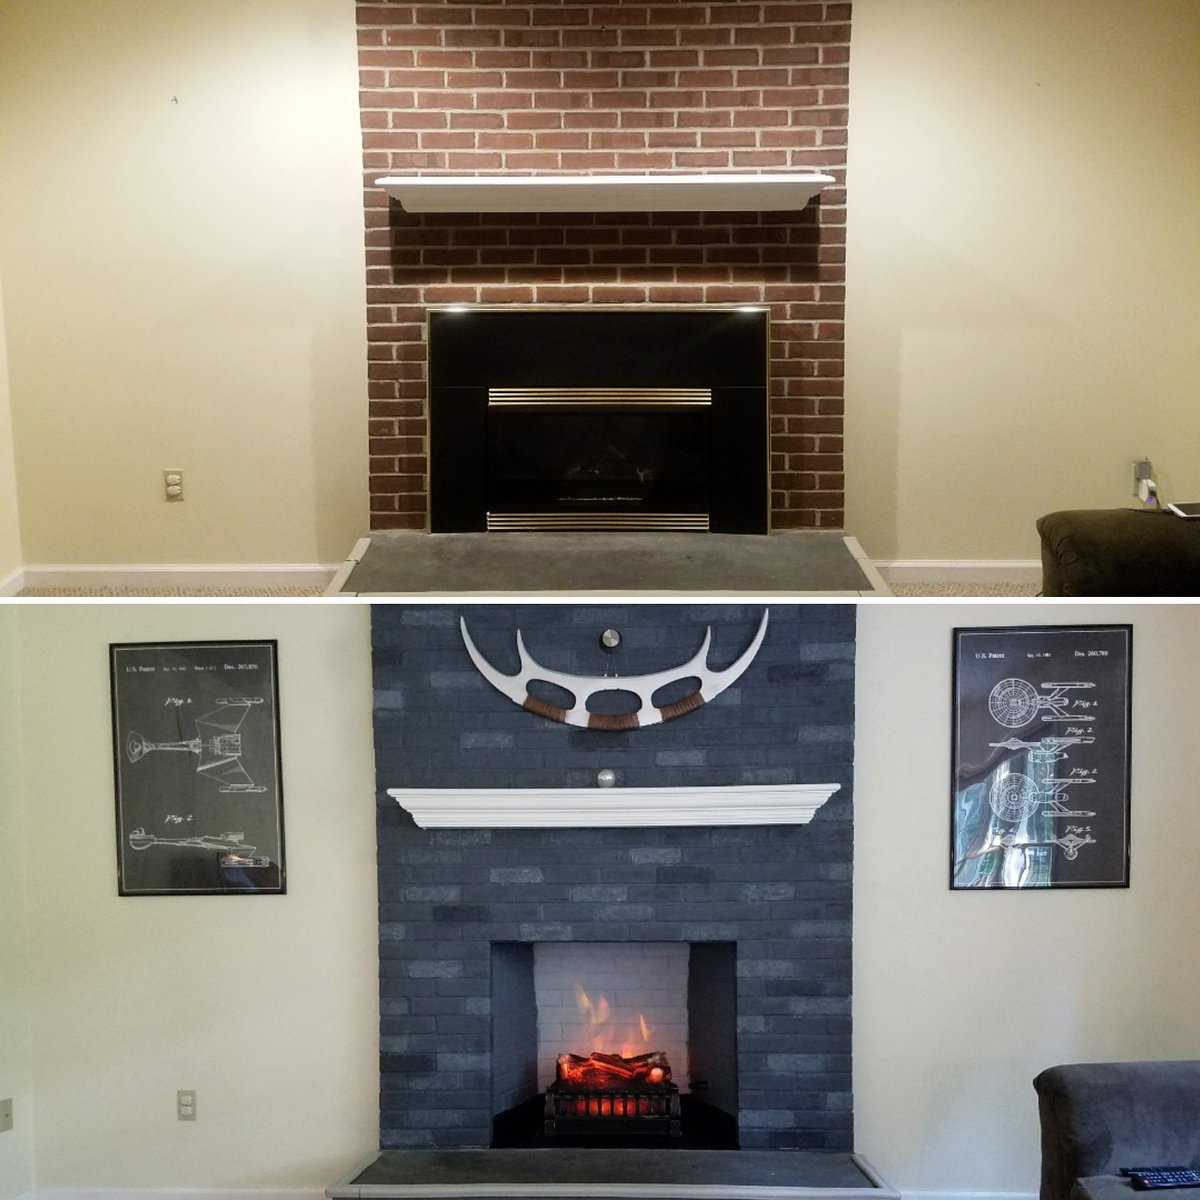 Bruno Campolo On Twitter Boring Sunday Fireplace Remodel And Yes That Is A Klingon Bat Leth Beforeandafter Diy Startrek